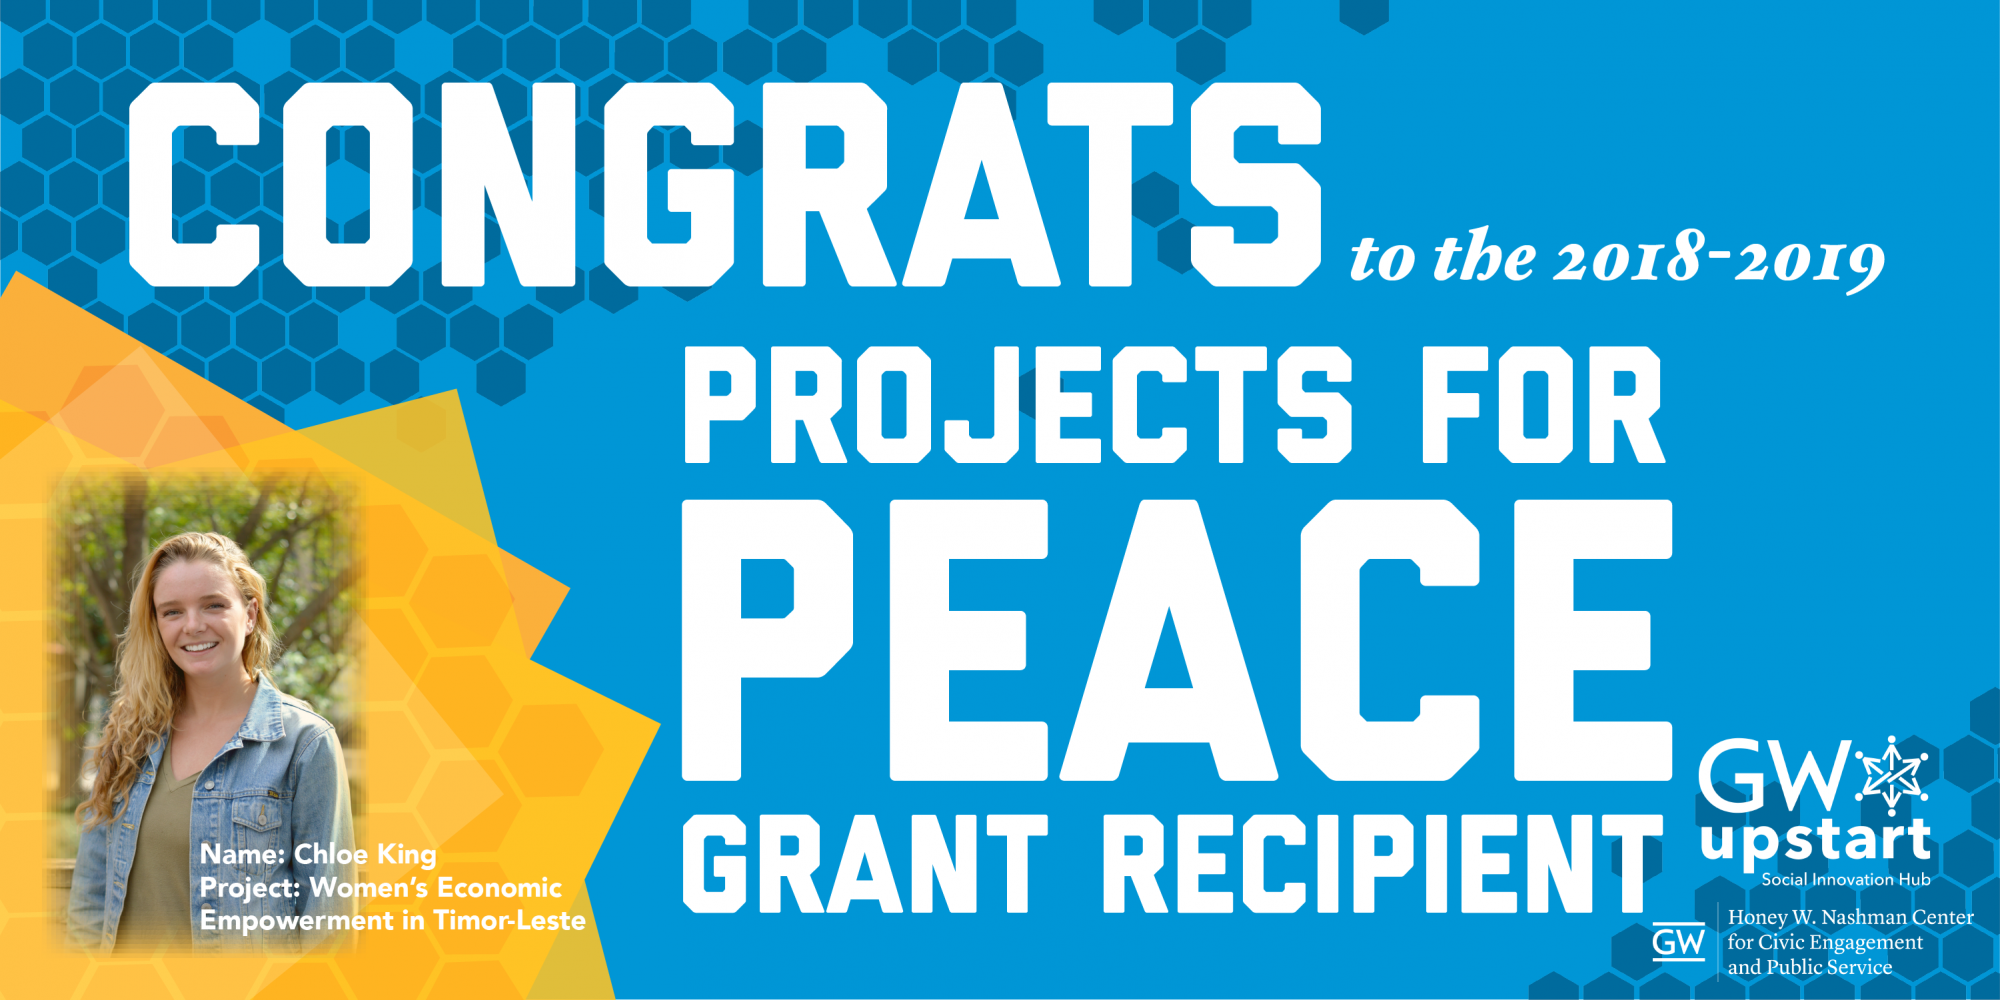 congrats to the 2018-2019 Projects for Peace Grant Recipient. Name: Chloe King, Projects: Women's Economic Empowerment in Timor-Leste